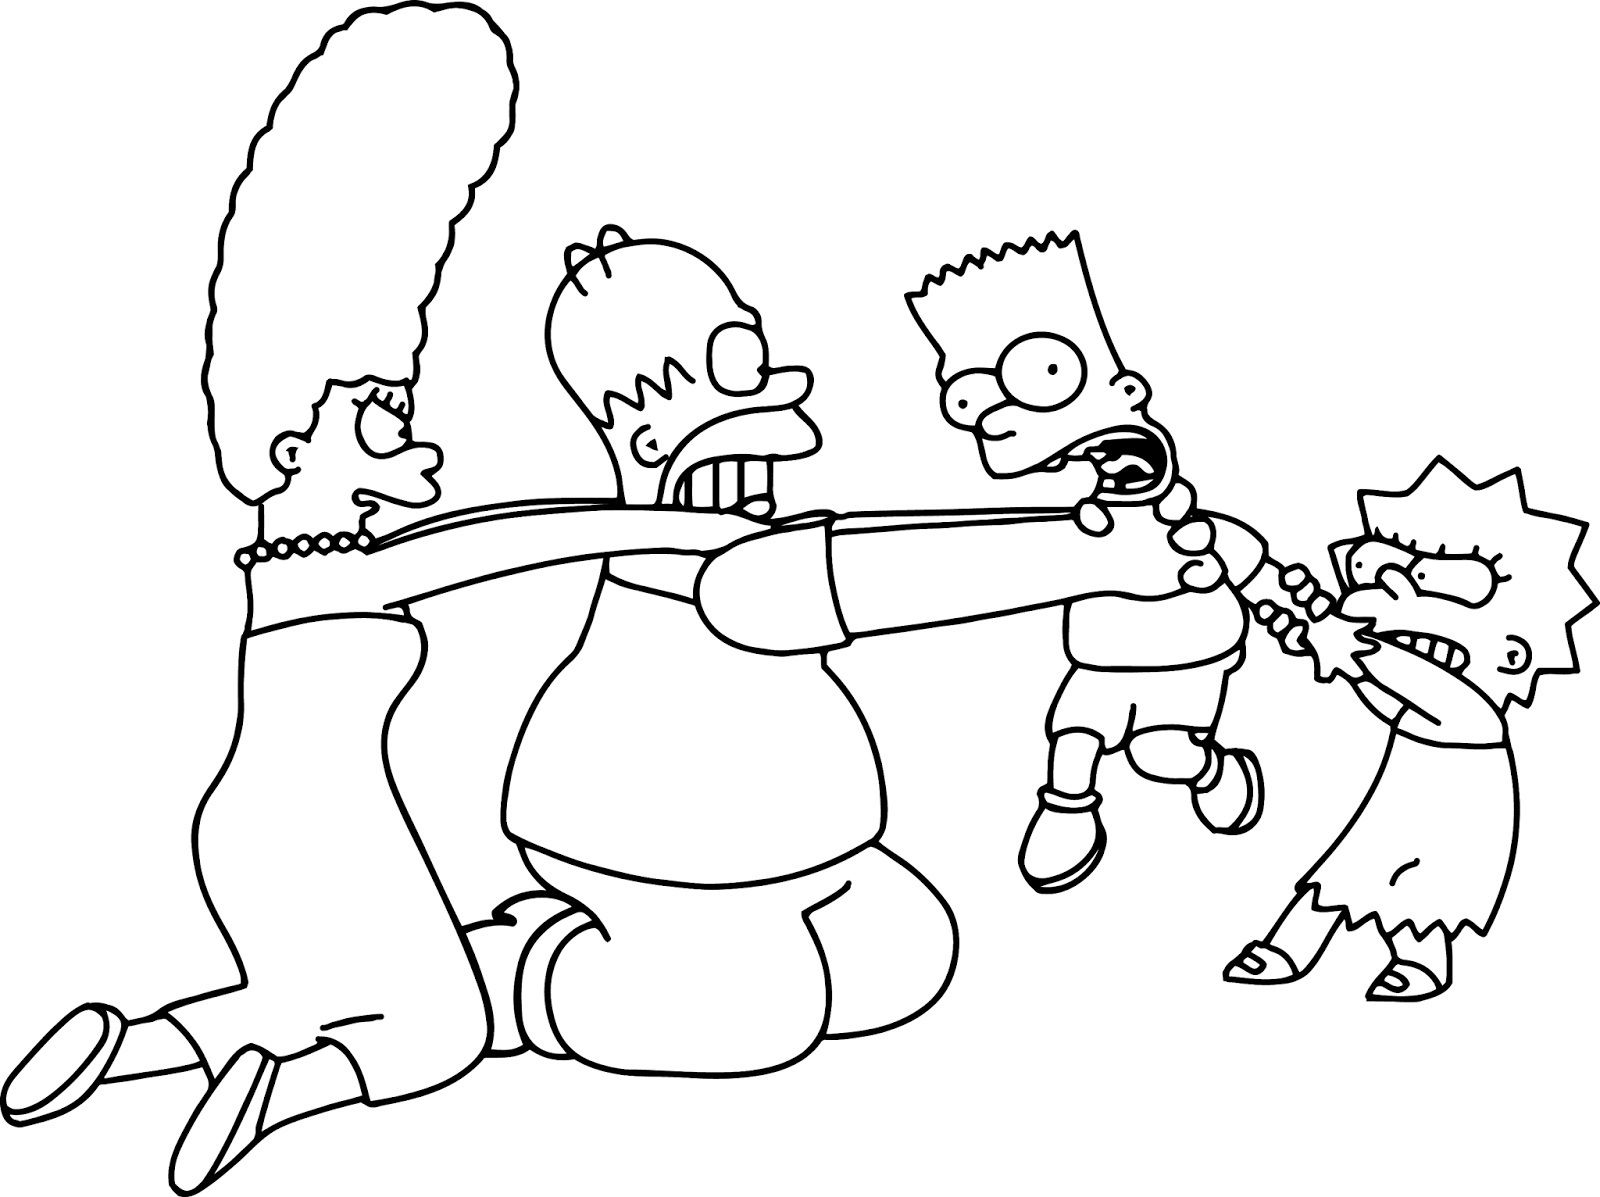 simpsons characters coloring pages - Cool Coloring Sheets To Print Out